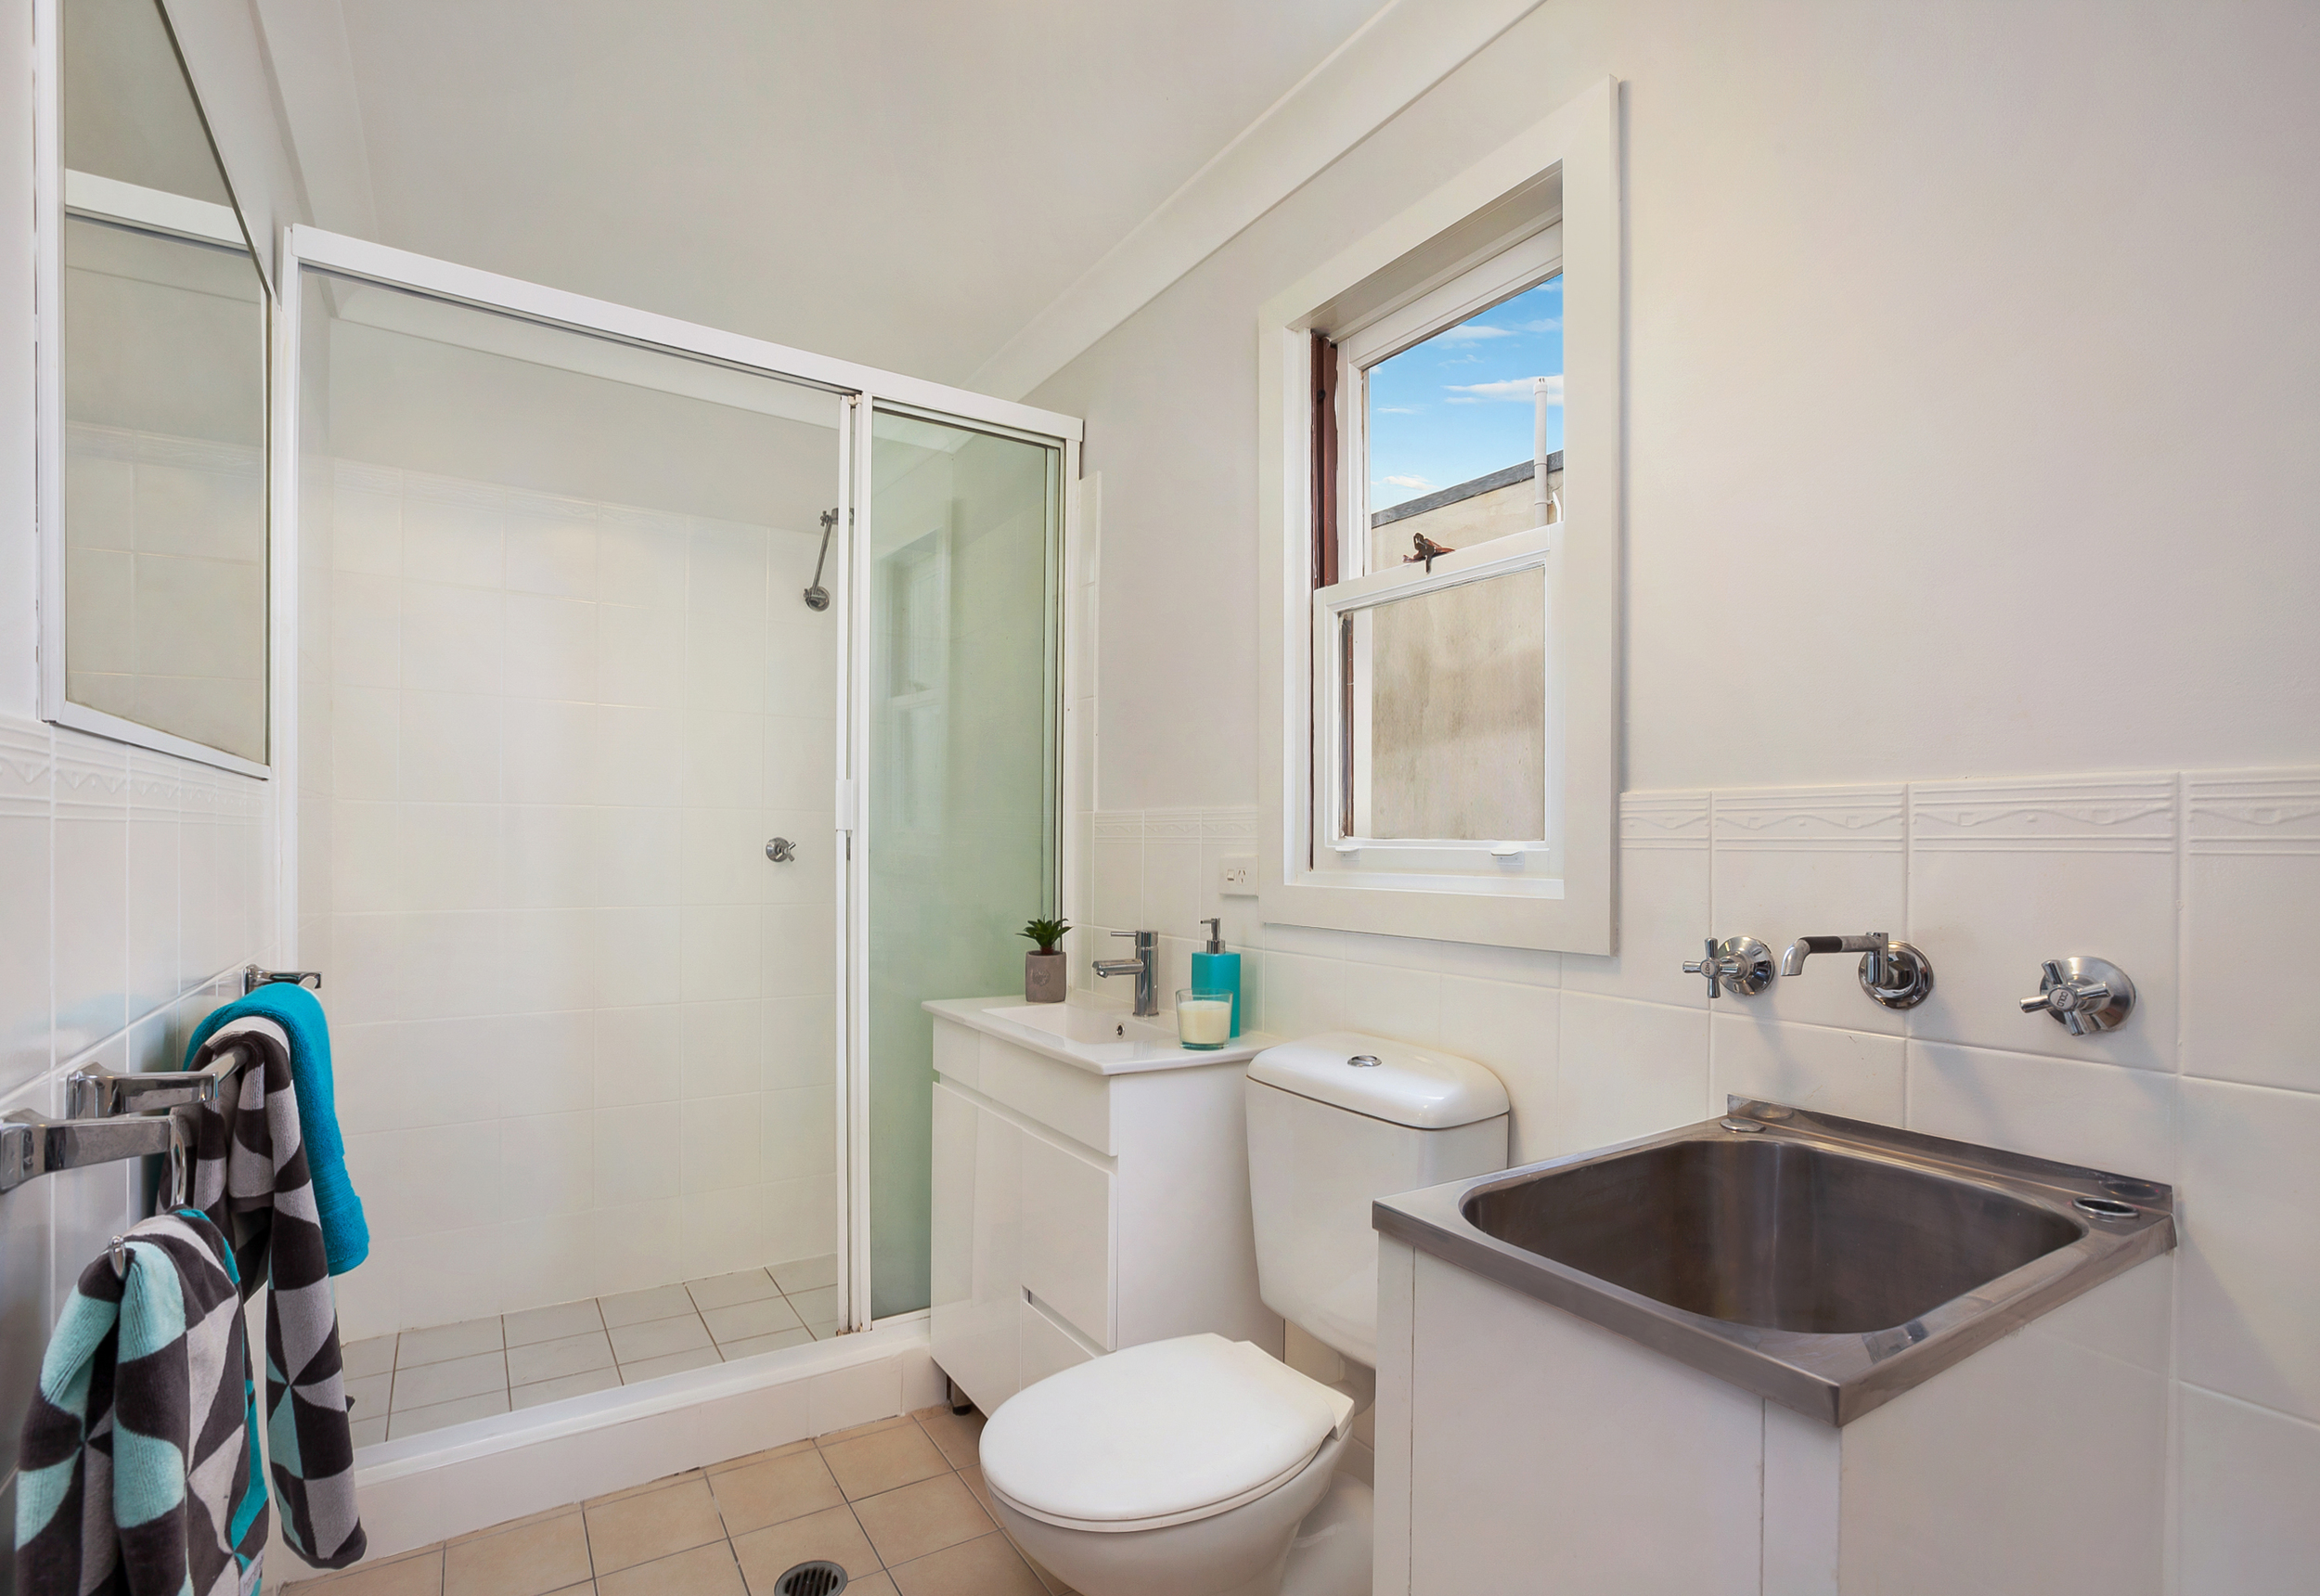 Middleton-St-3-24-Petersham-Bathroom.jpg